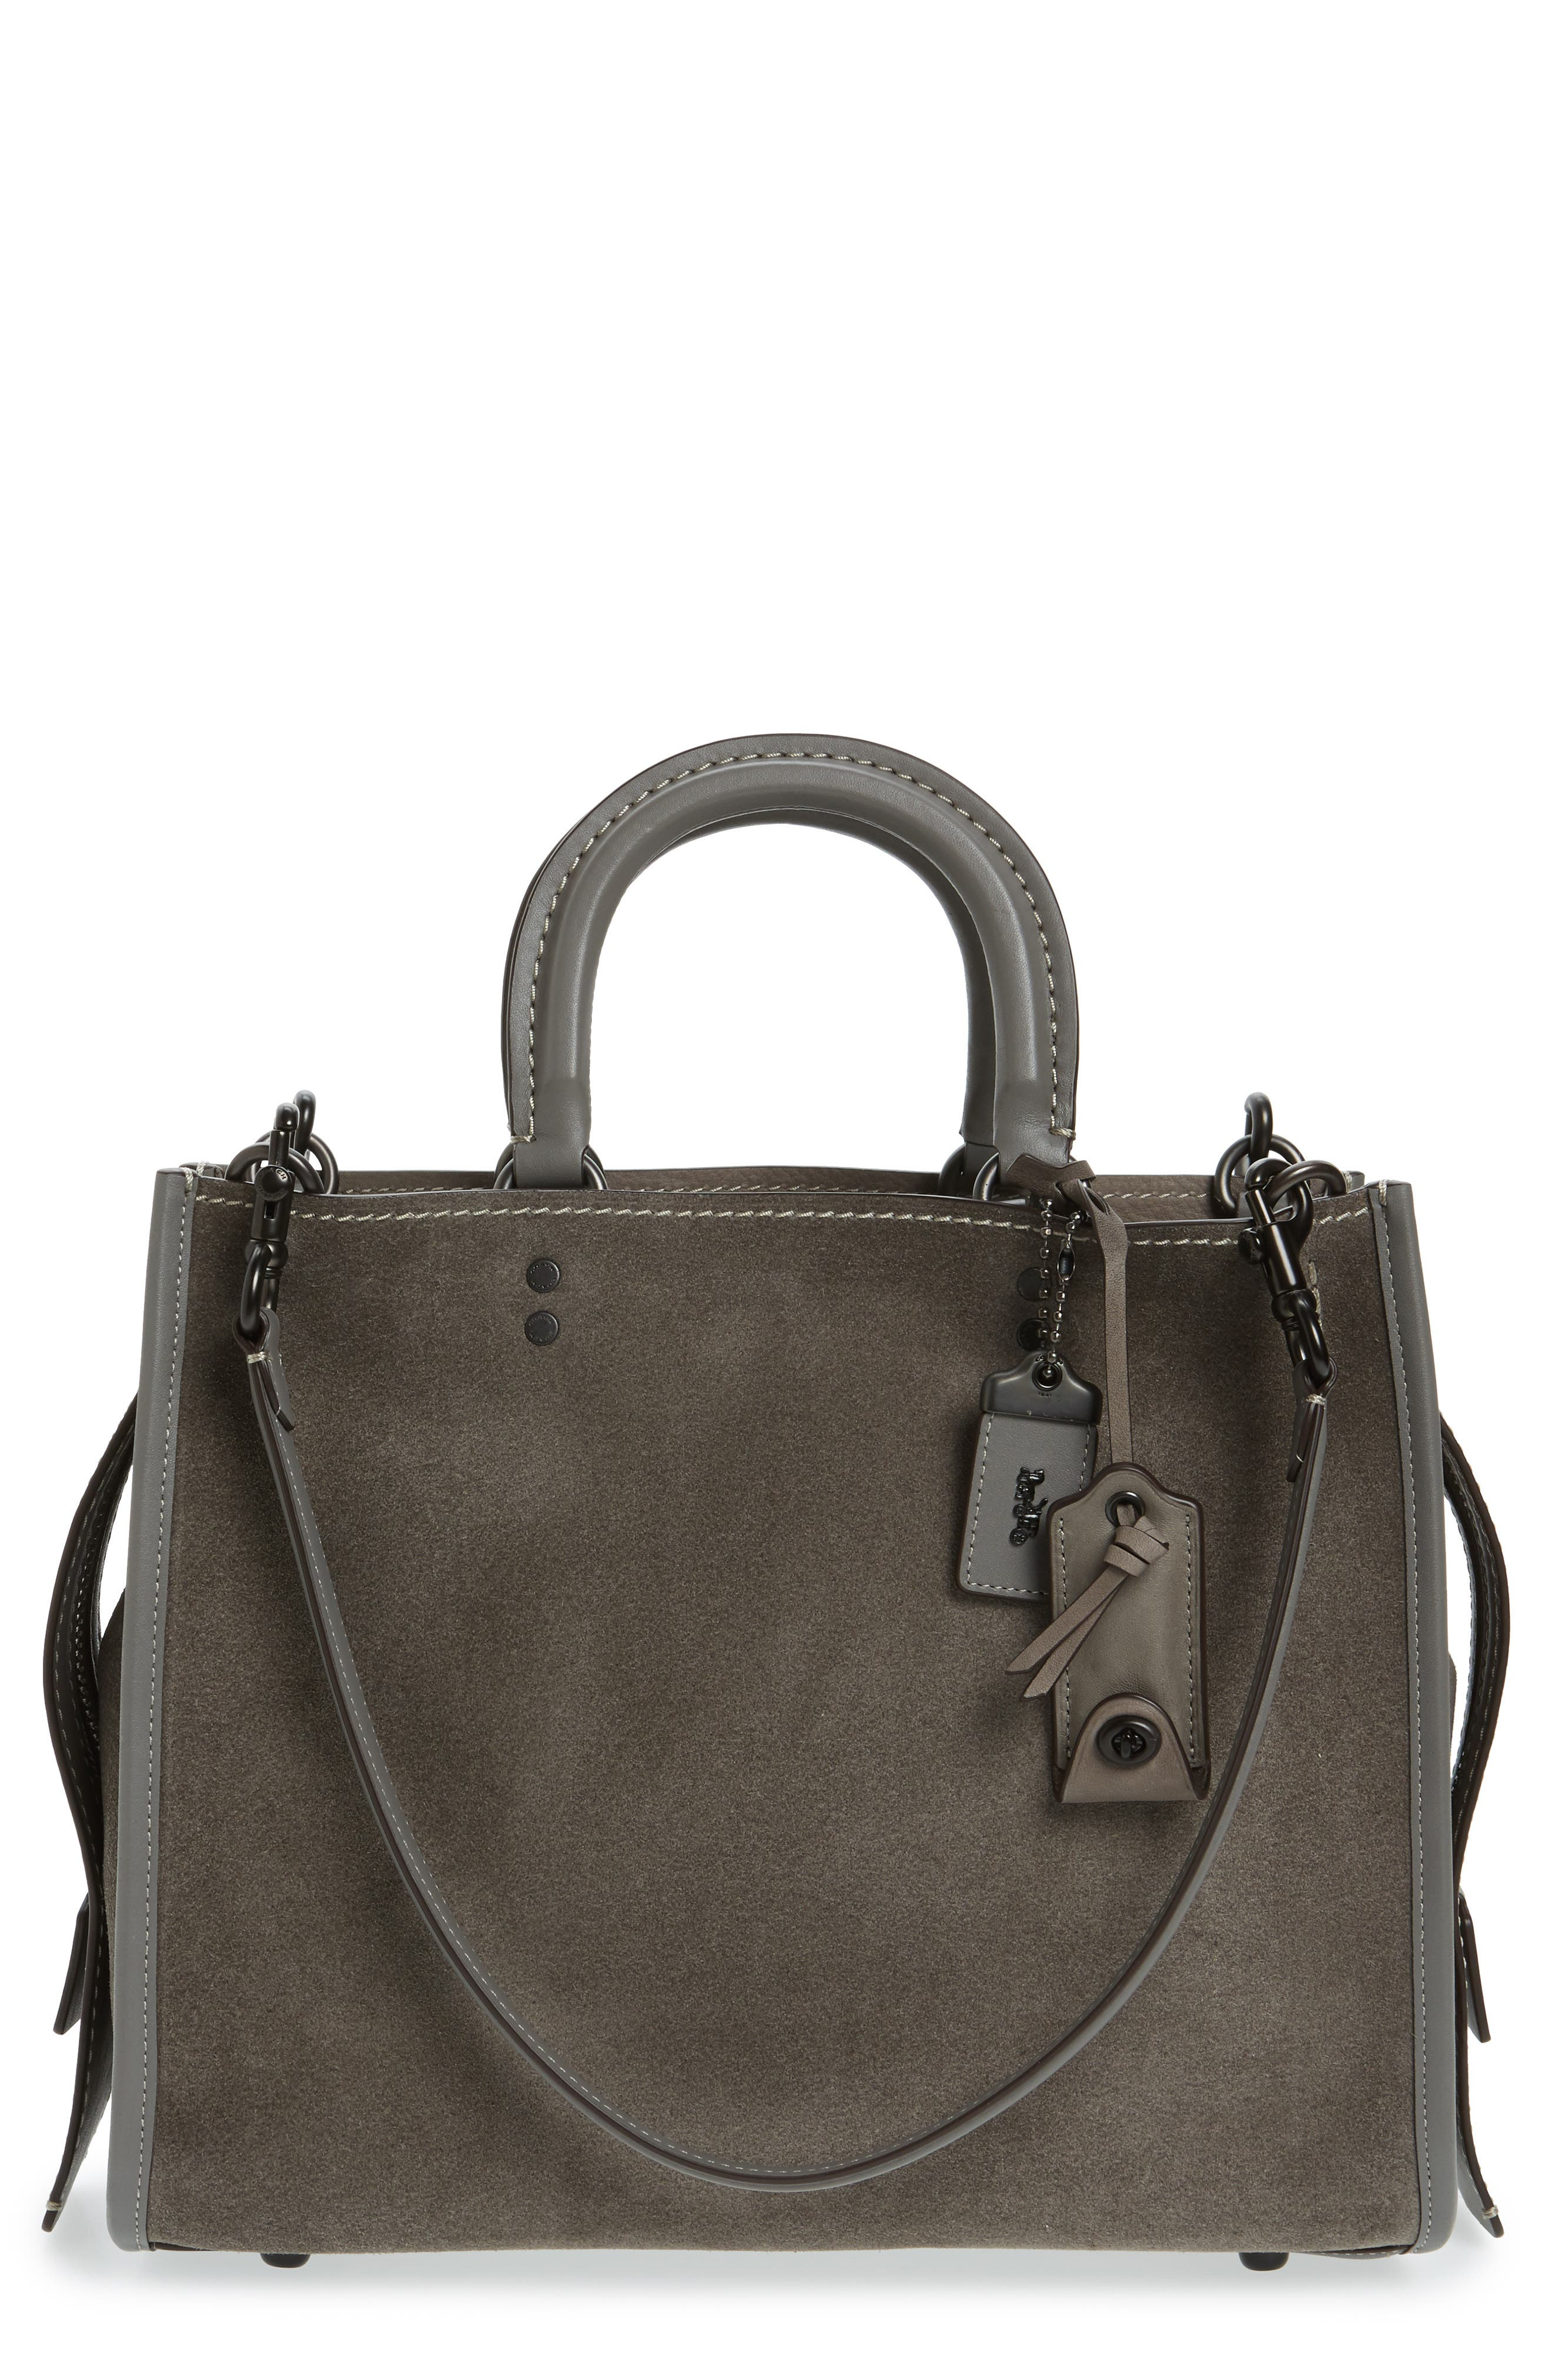 'Rogue' Leather Satchel,                             Main thumbnail 1, color,                             Heather Grey